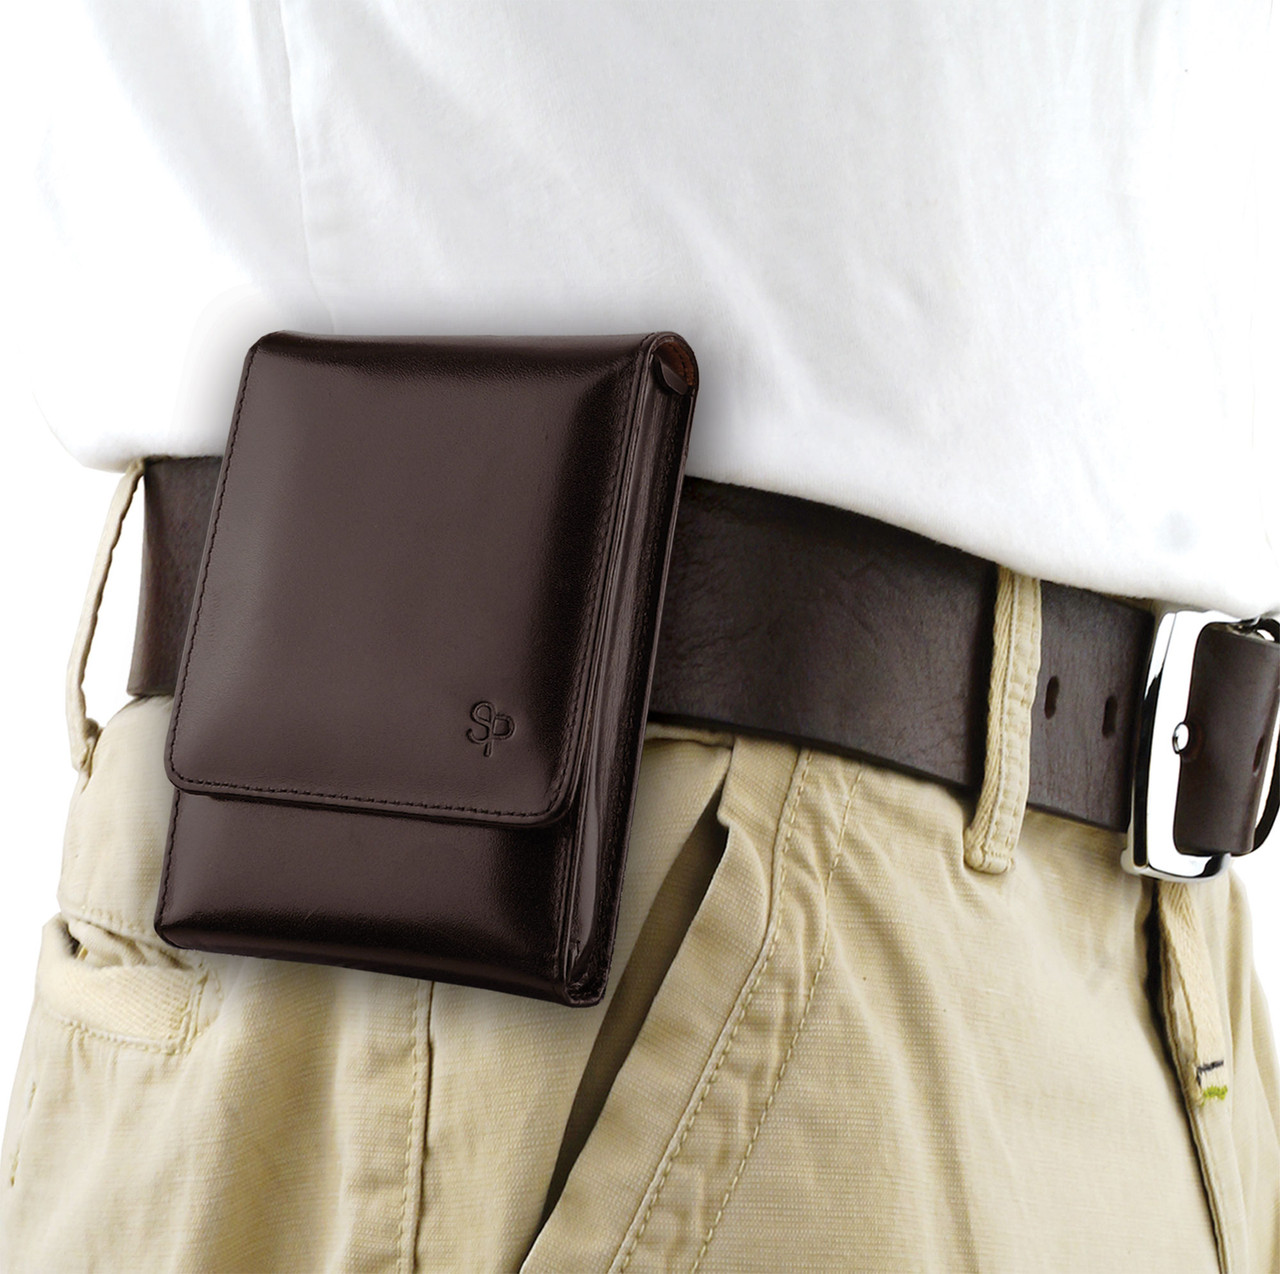 Taurus G3 Brown Leather Series Holster